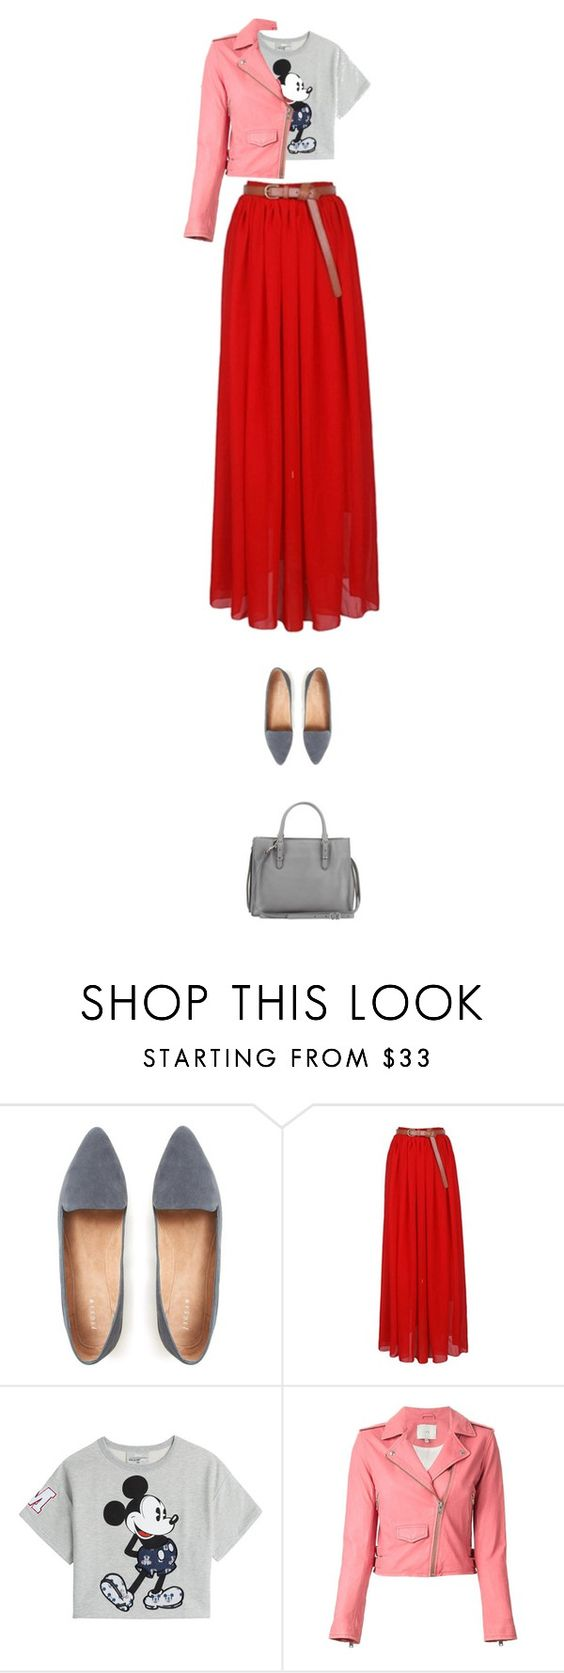 """the red skirt"" by walkthisland ❤ liked on Polyvore featuring Paul & Joe Sister, IRO and Balenciaga"